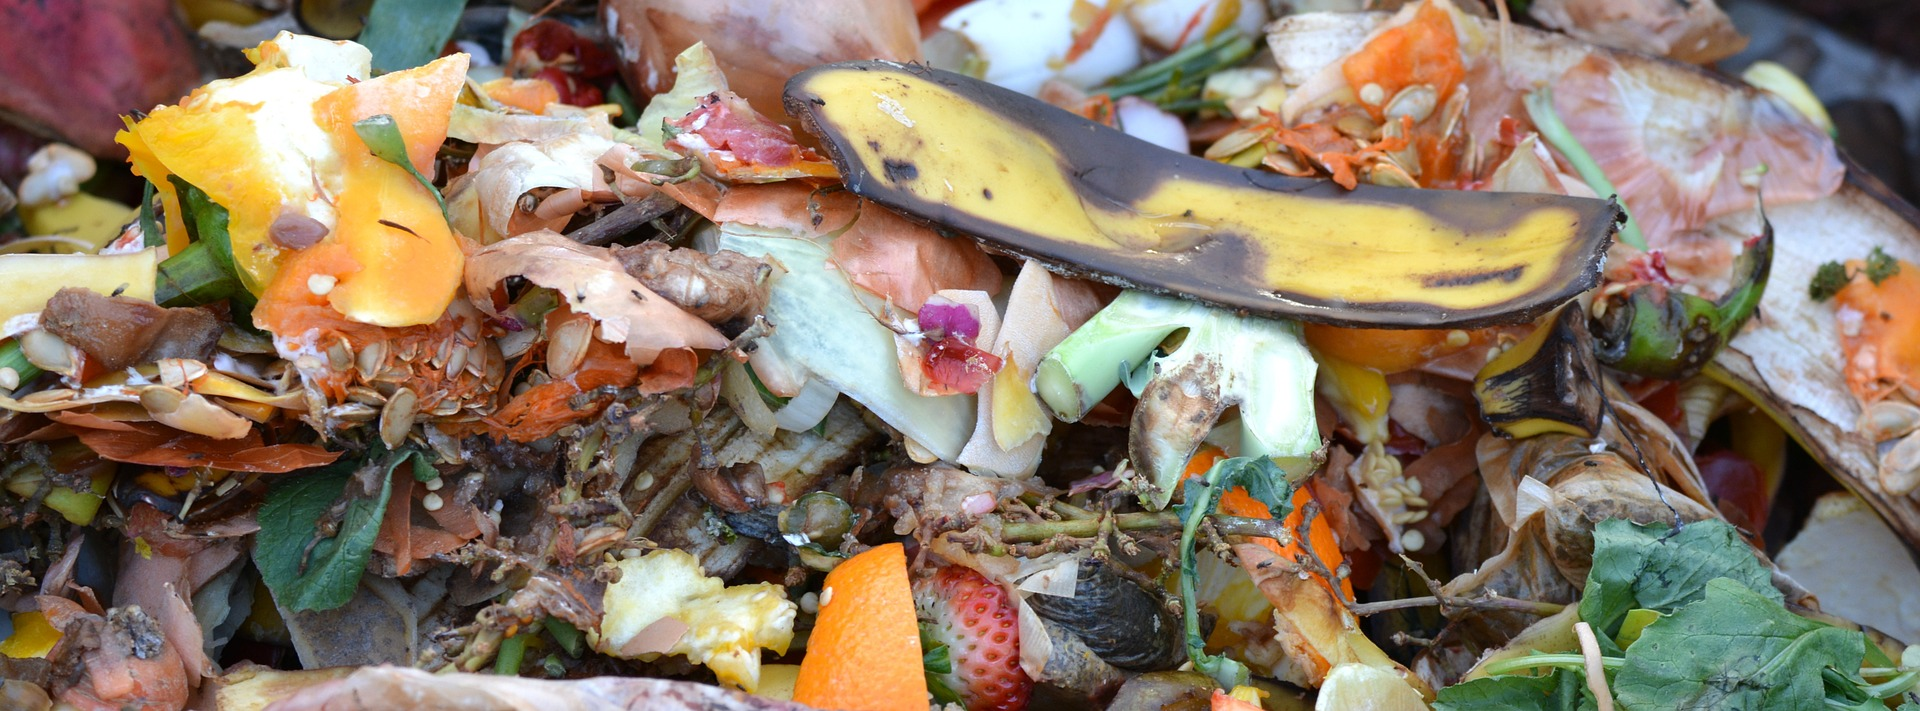 Food Waste is just that, waste